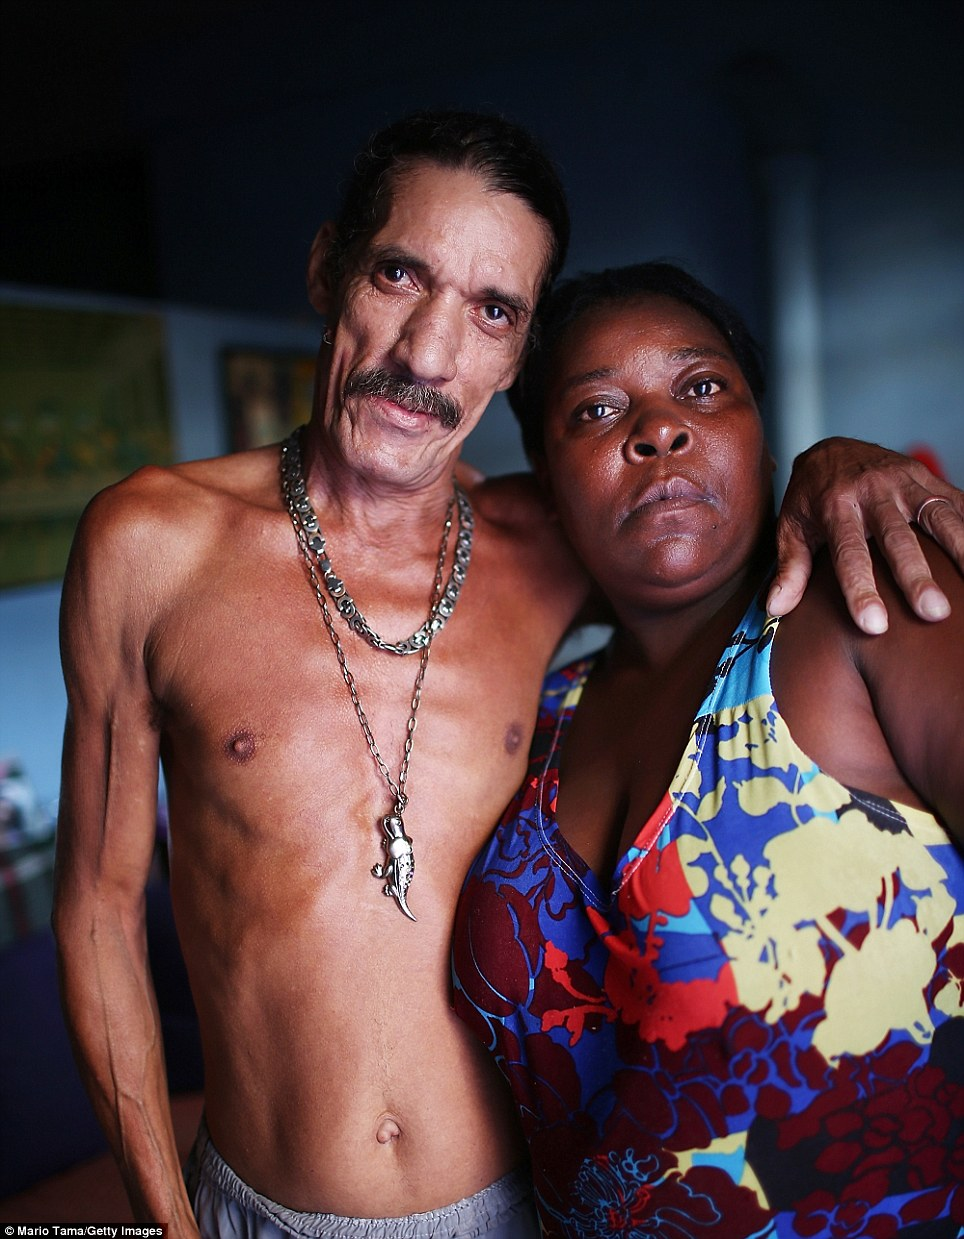 Rio has long been in the global spotlight for its slums and the drug-related violence. The government is hoping to change the face of the city with the upcoming World Cup